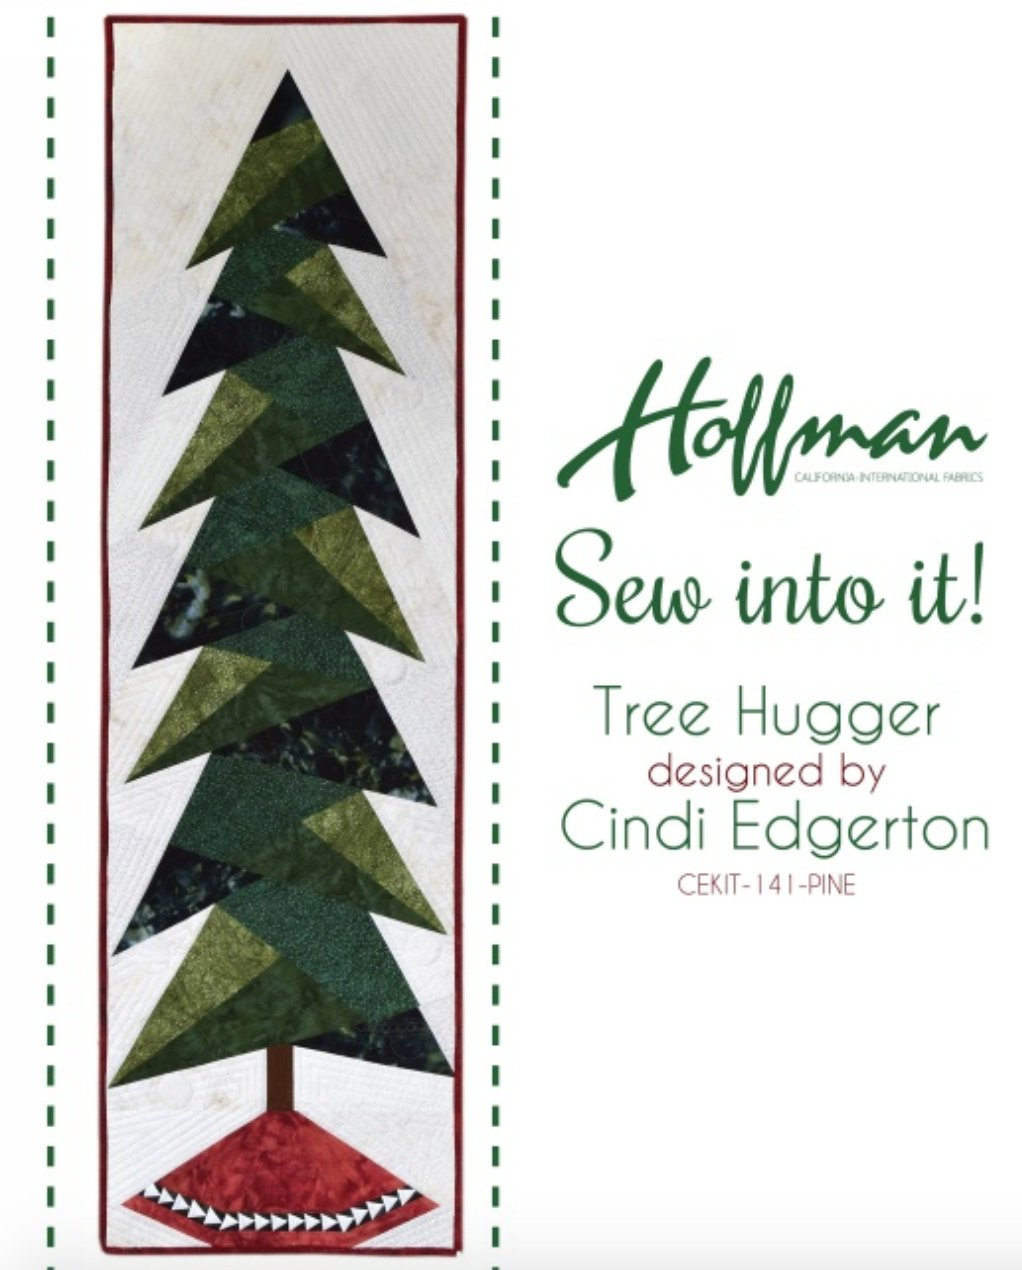 Sew into it Pine Tree Hugger Quilt Kit by Hoffman Fabrics